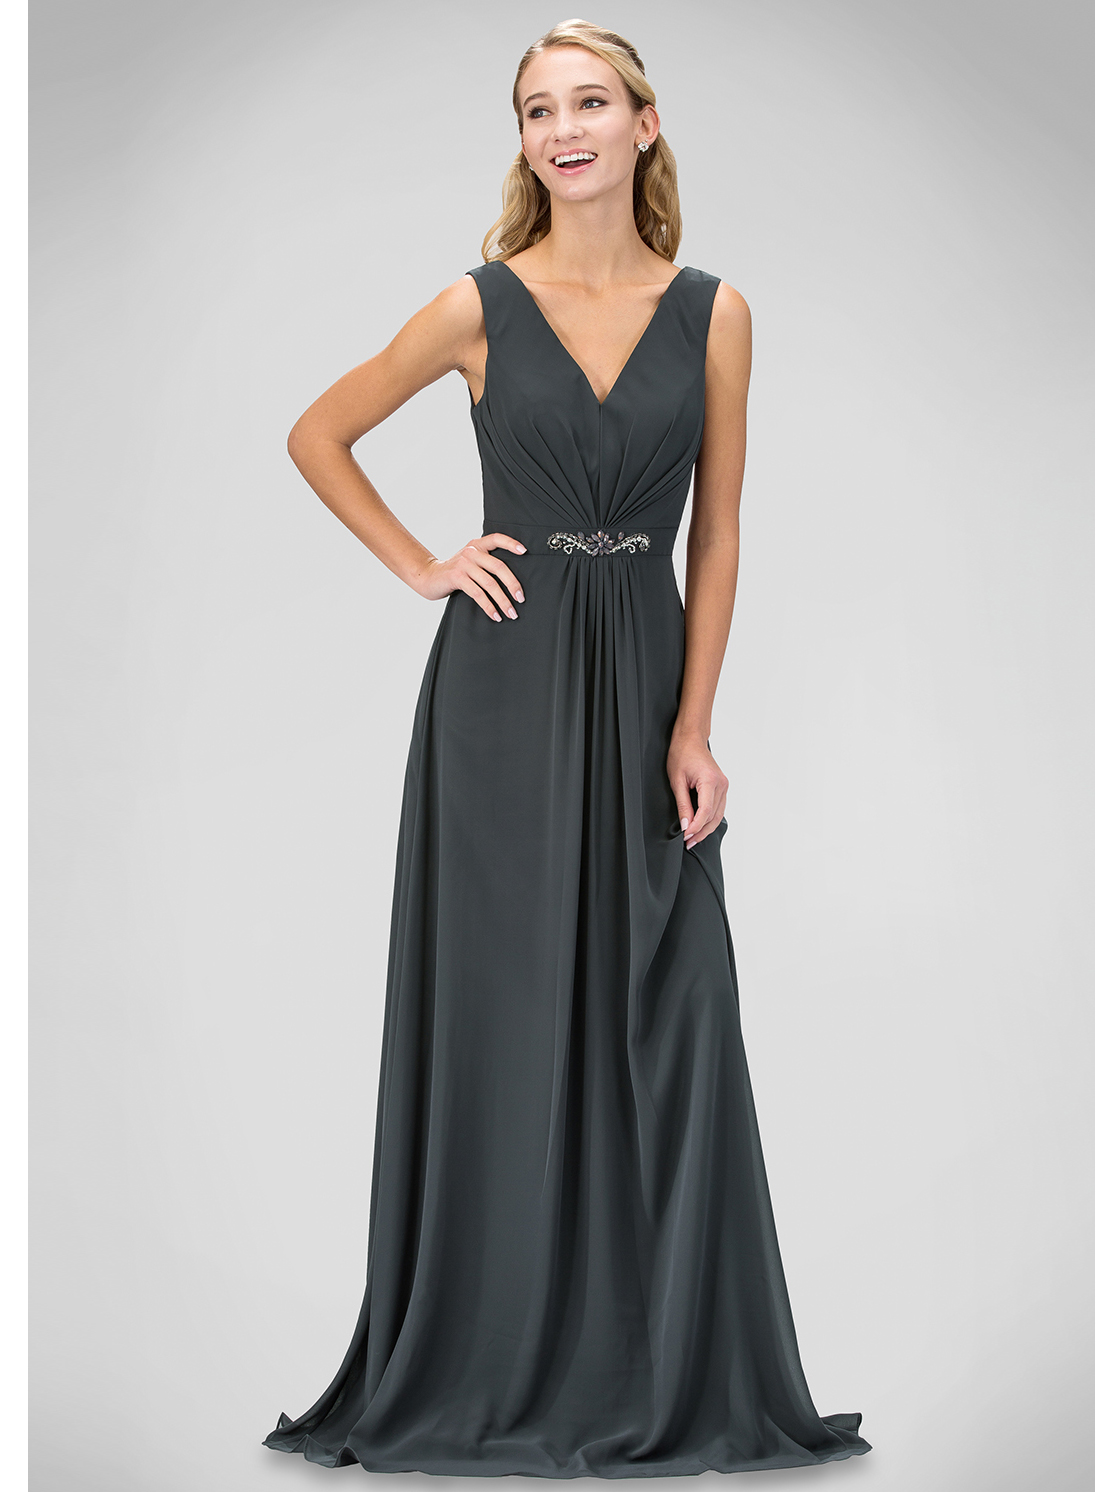 V-neck Evening Dress with Jeweled Belt | Sung Boutique L.A.